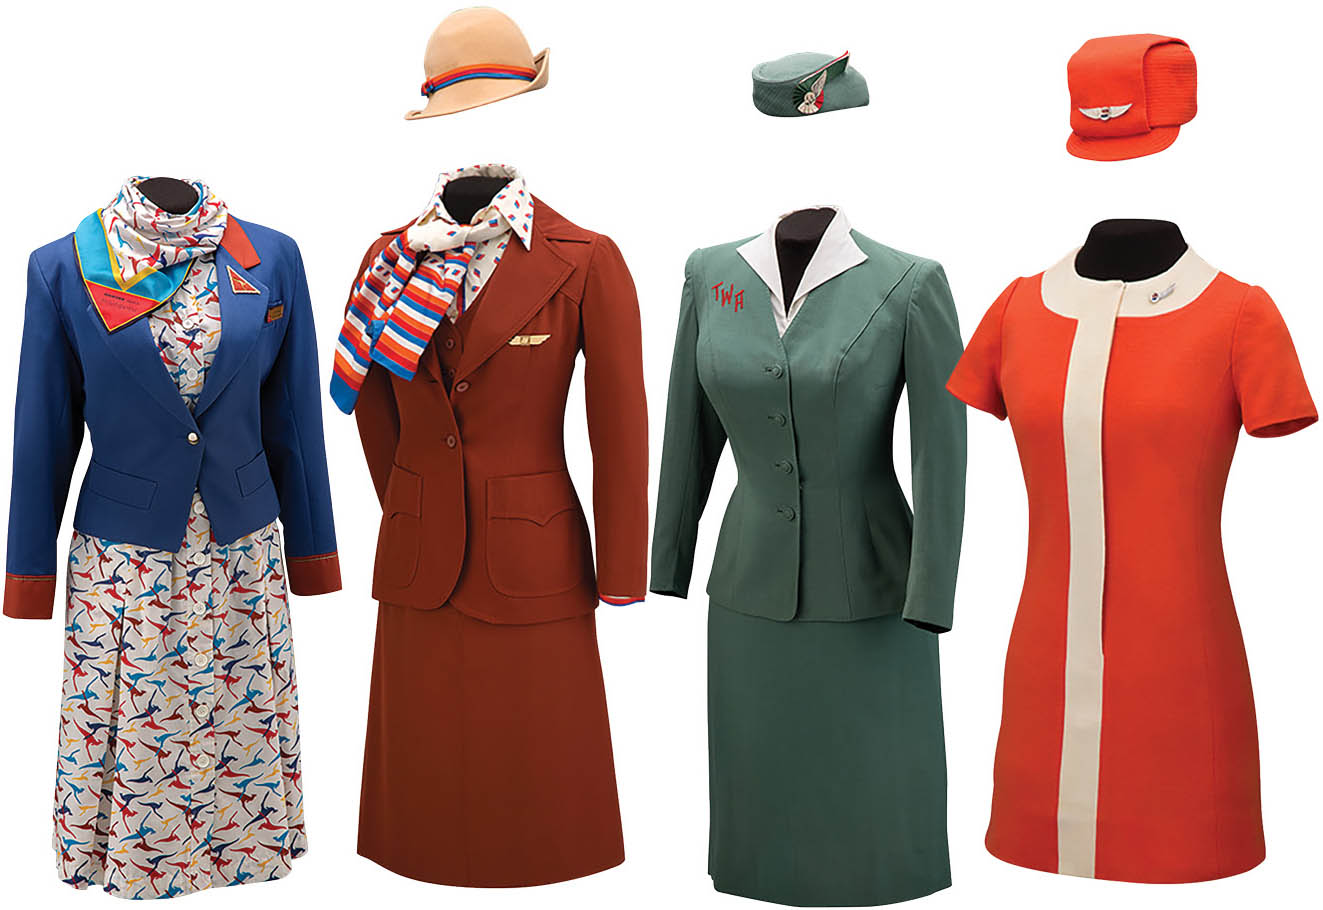 From left to right:Qantas uniform by Yves Saint Laurent, 1986;United Airlines uniform by Stan Herman, 1976;Trans World Airlines uniform by Oleg Cassini, 1955;United Airlines uniform by Jean Louis, 1968